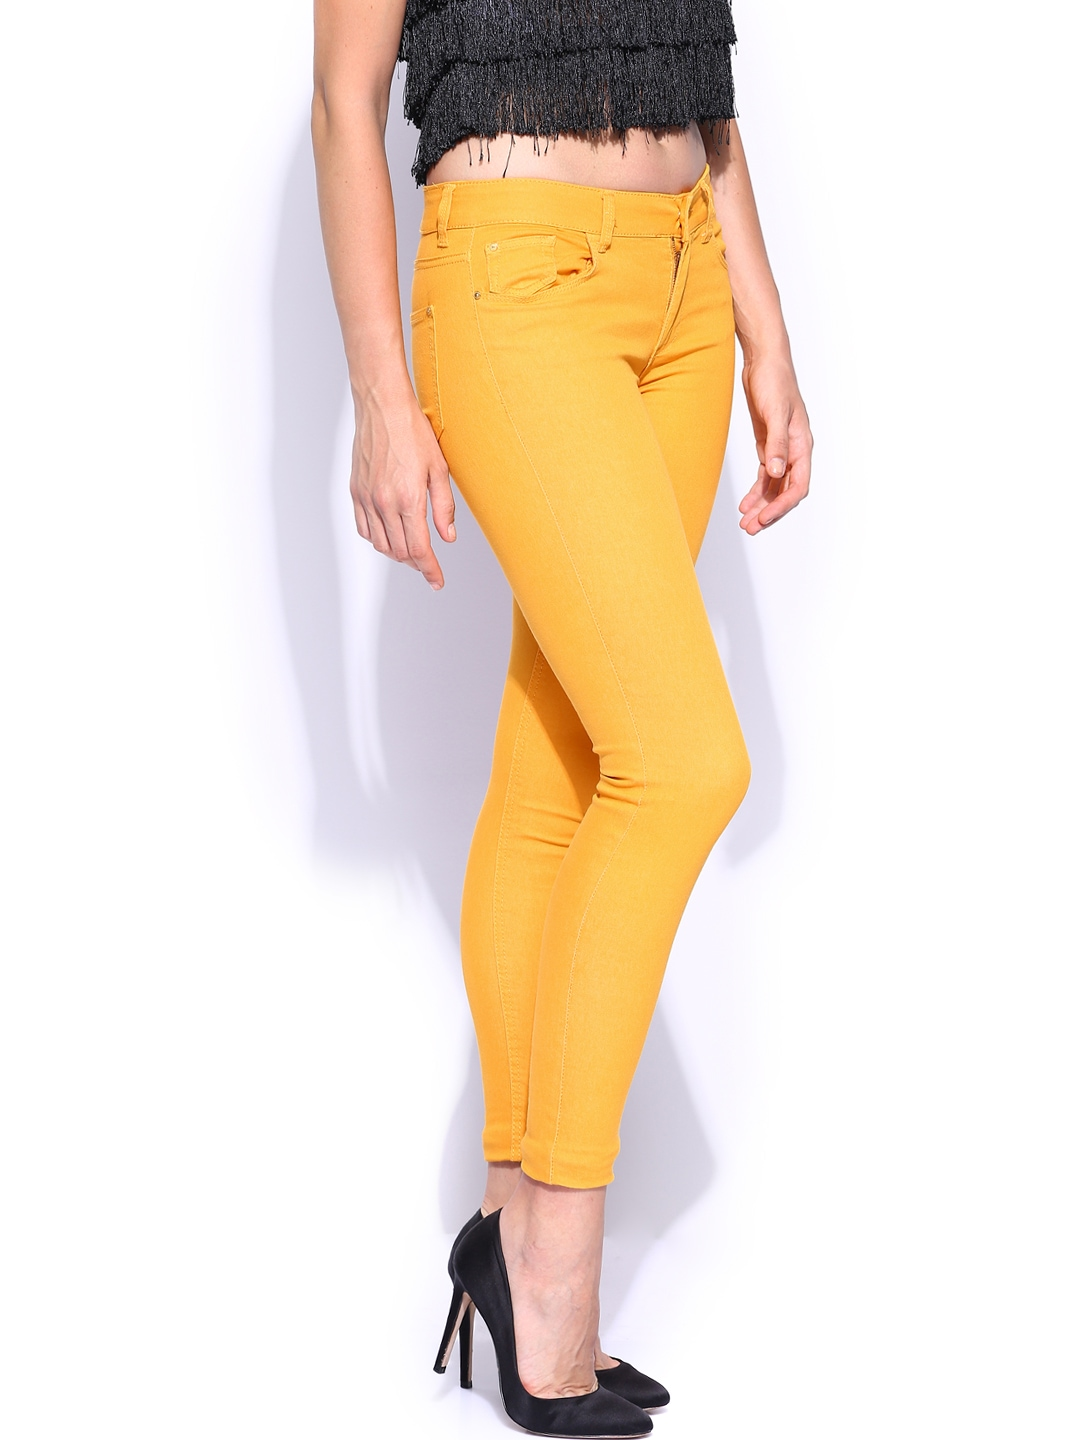 matches. ($ - $) Find great deals on the latest styles of Yellow skinny jeans womens. Compare prices & save money on Women's Jeans.